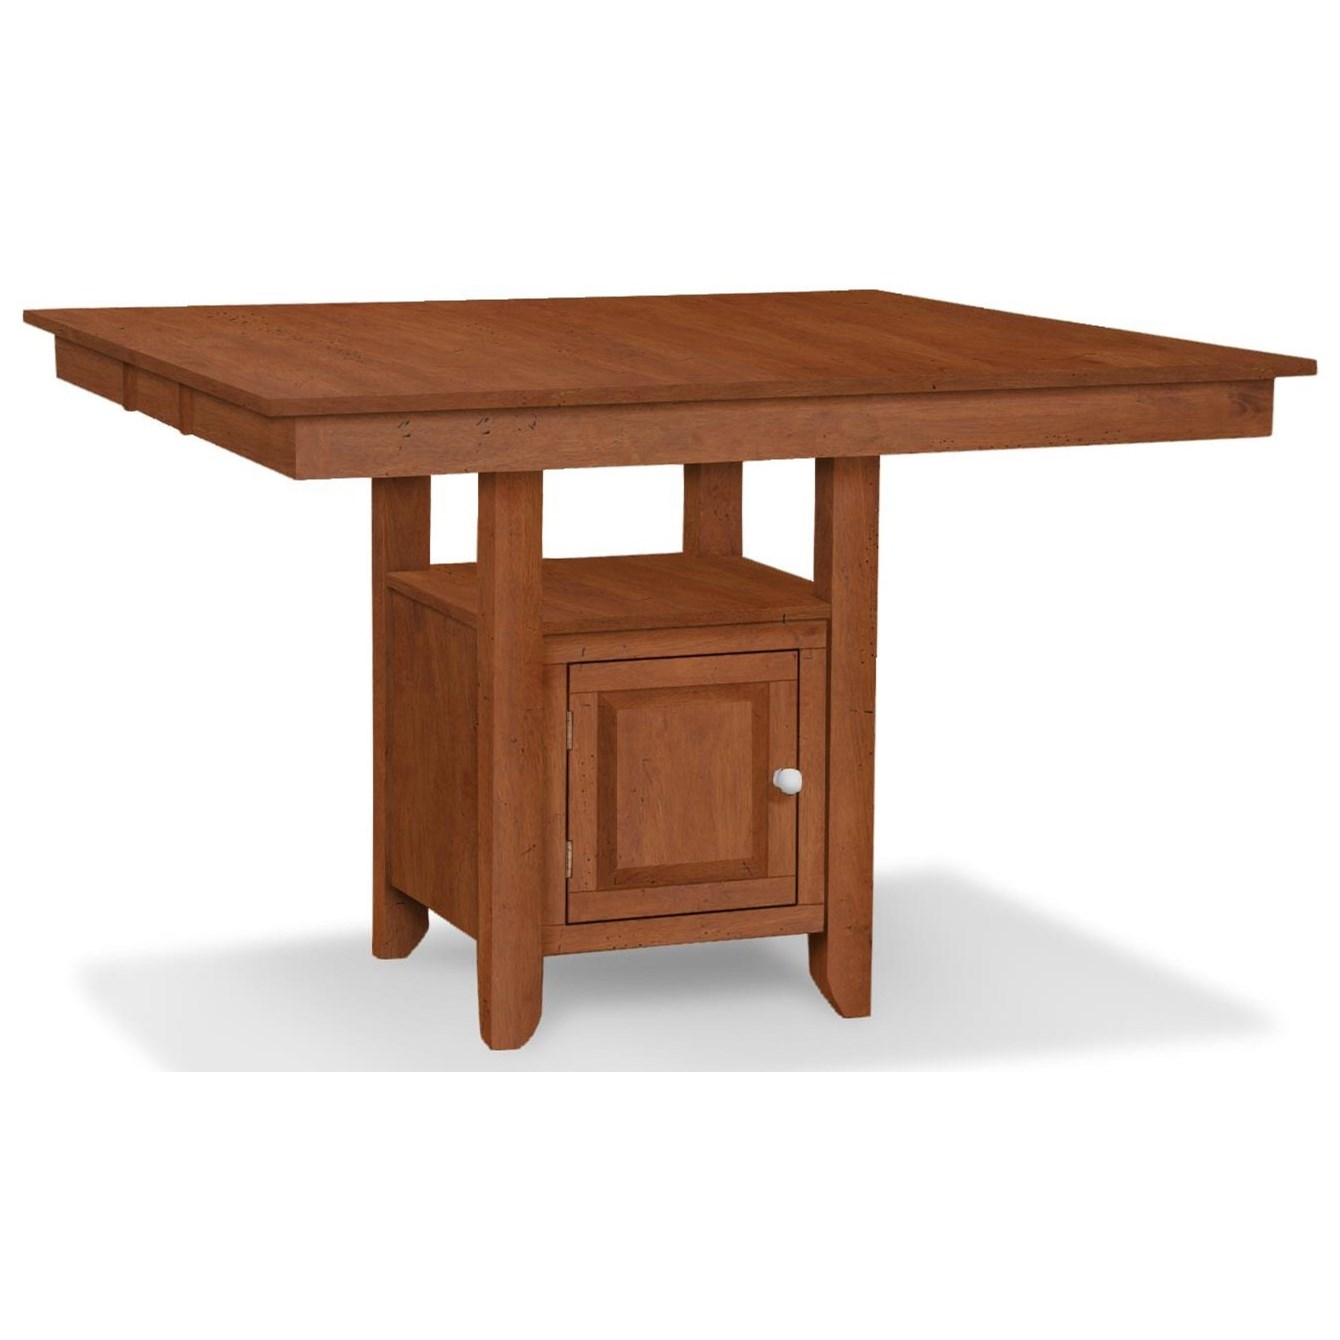 John Thomas Select Dining T 4254xbg T Hd641 Gathering Height Table With Pedestal Storage Baer S Furniture Pub Tables